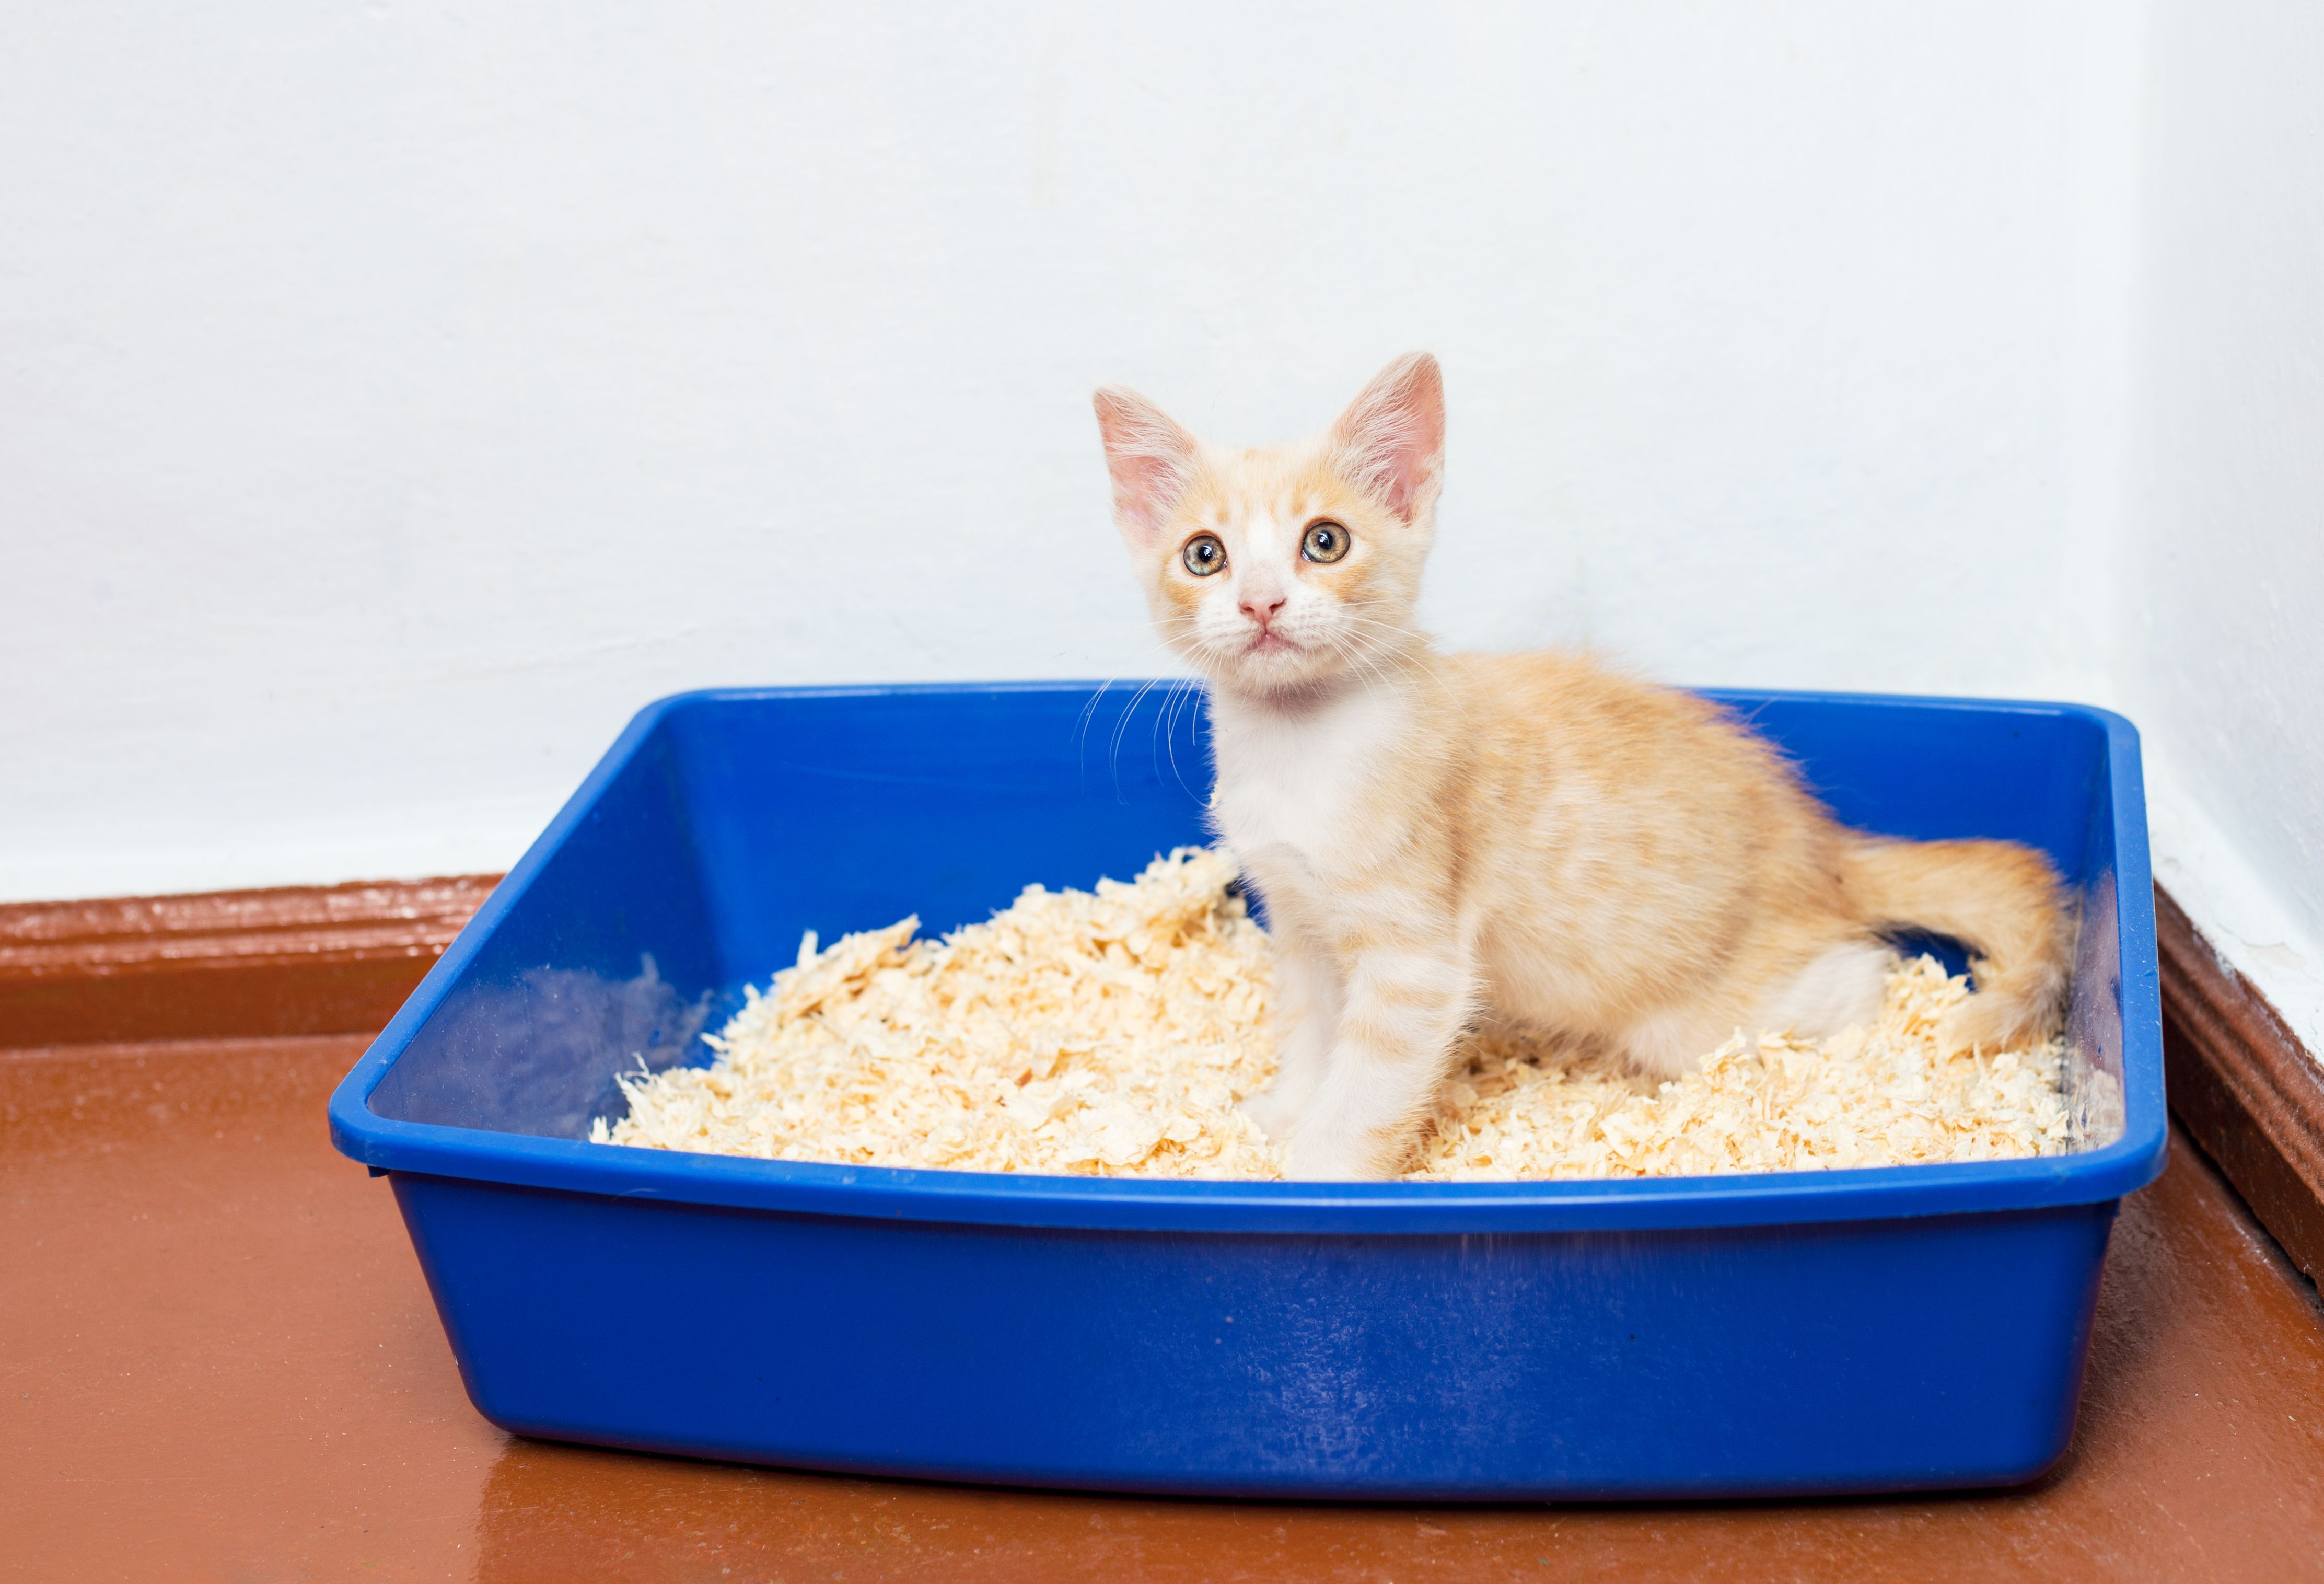 How To Get Rid Of The Smell Of Cat Urine Training a